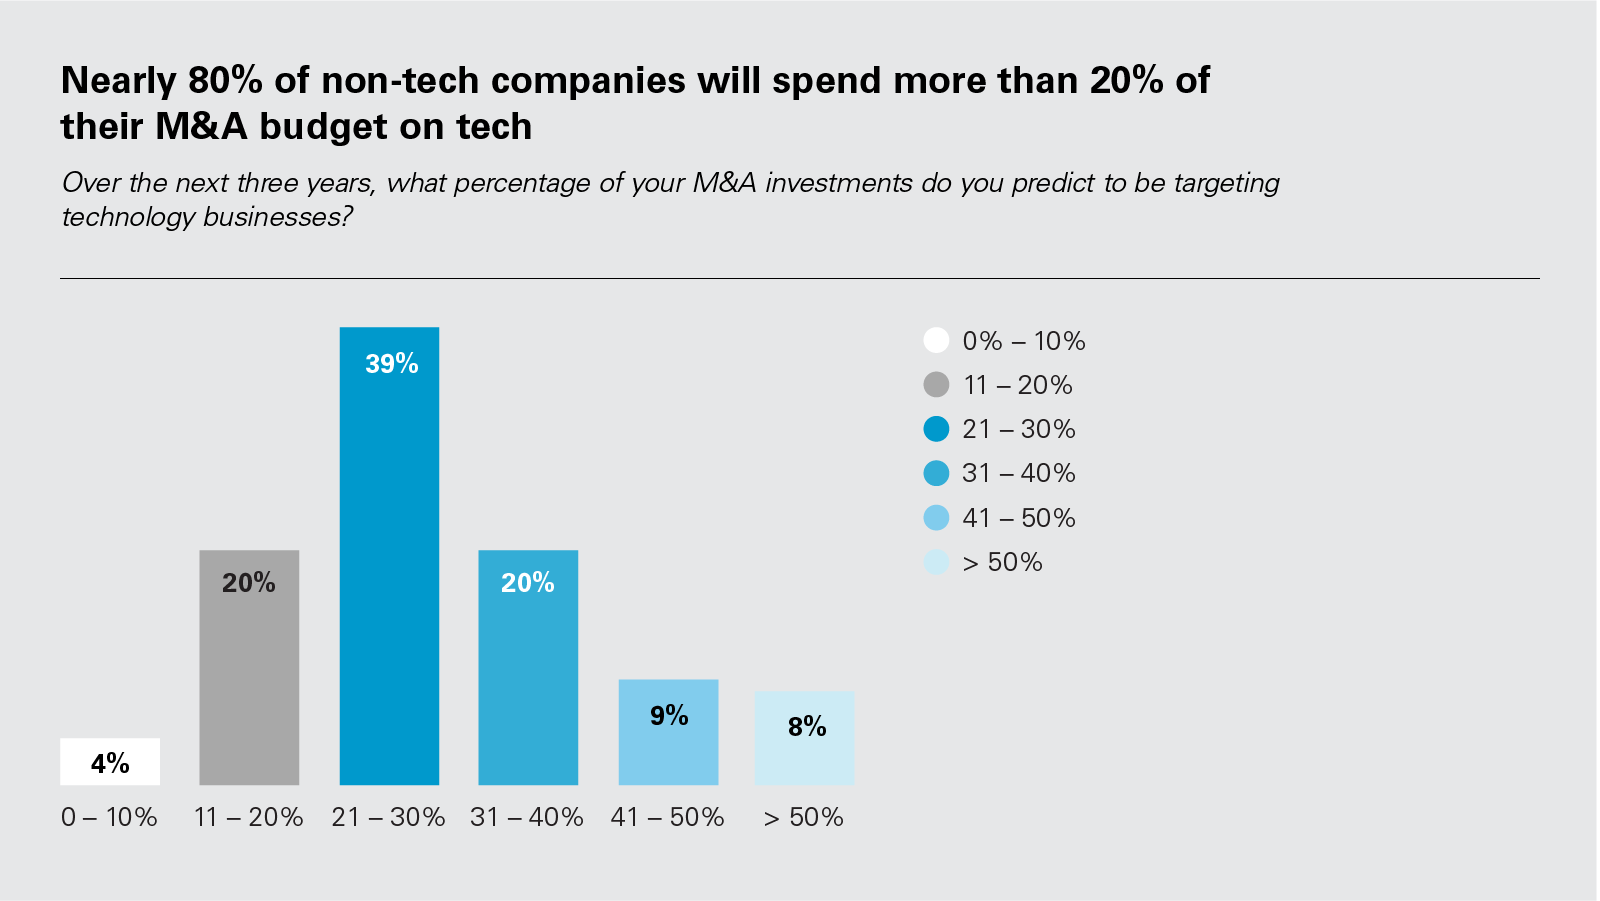 Nearly 80% of non-tech companies will spend more than 20% of their M&A budget on tech